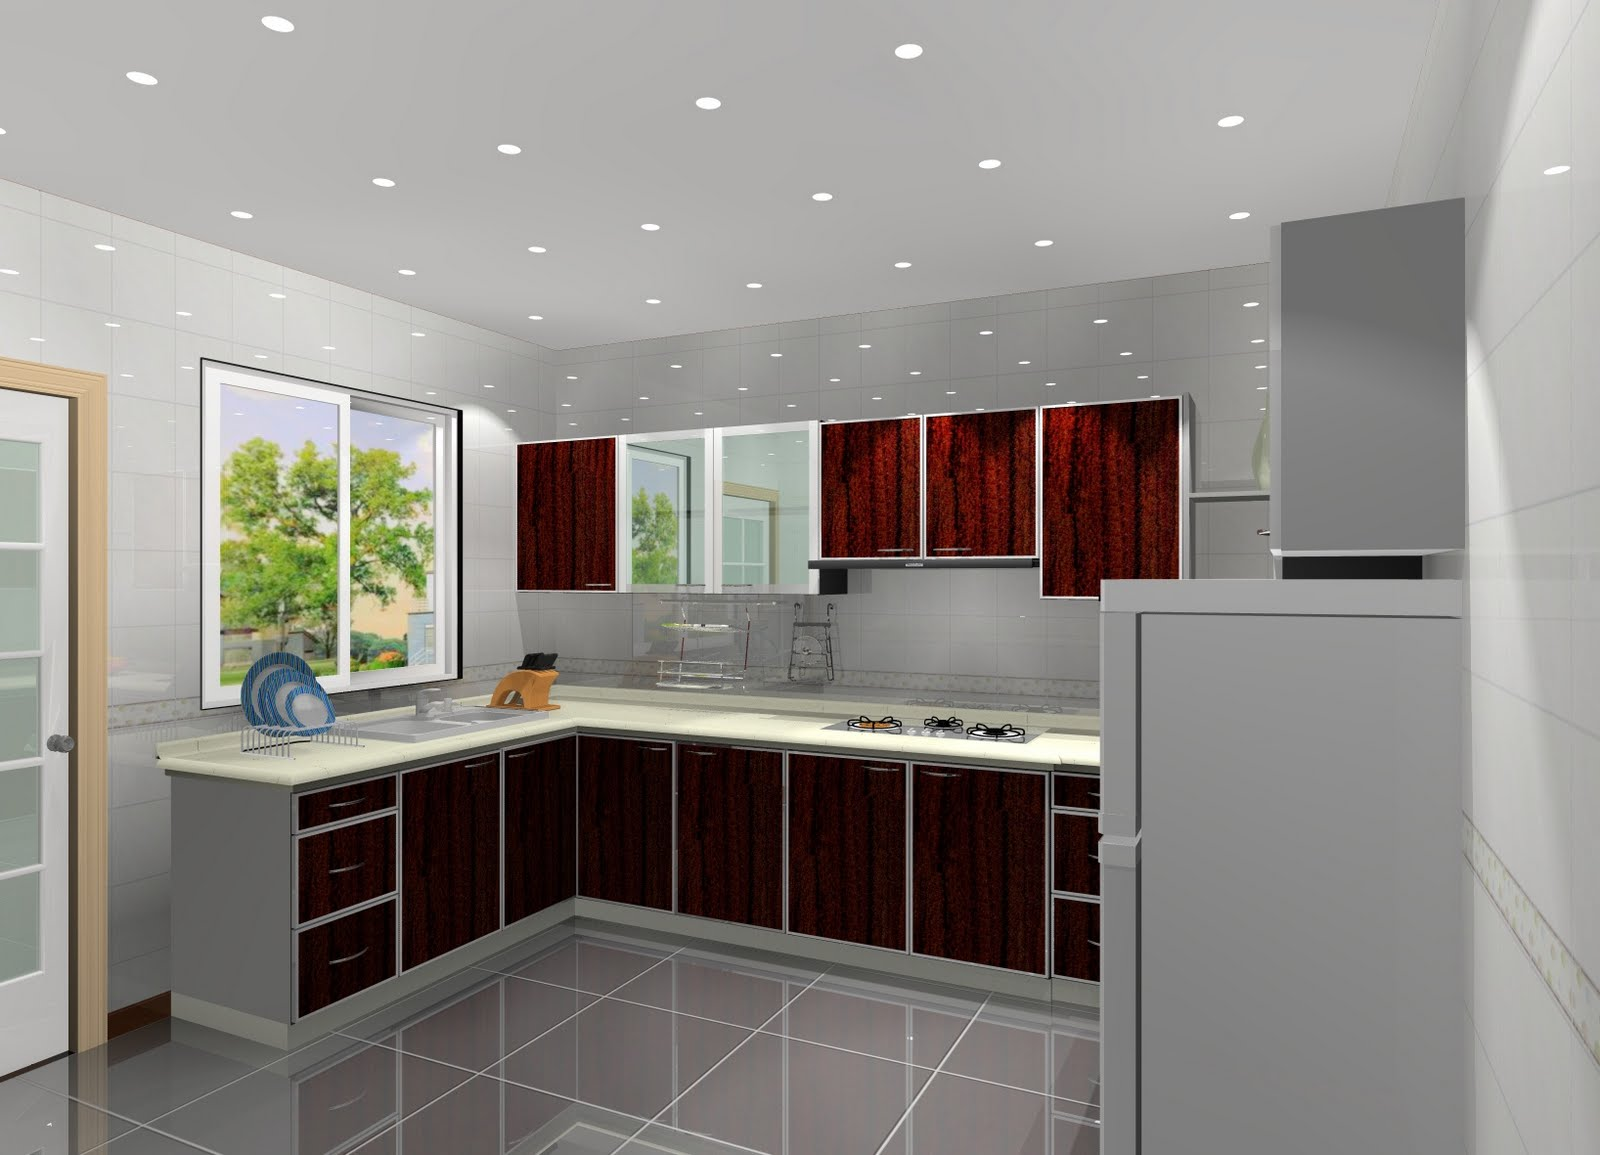 where can i get kitchen cabinets in nigeria - business to business